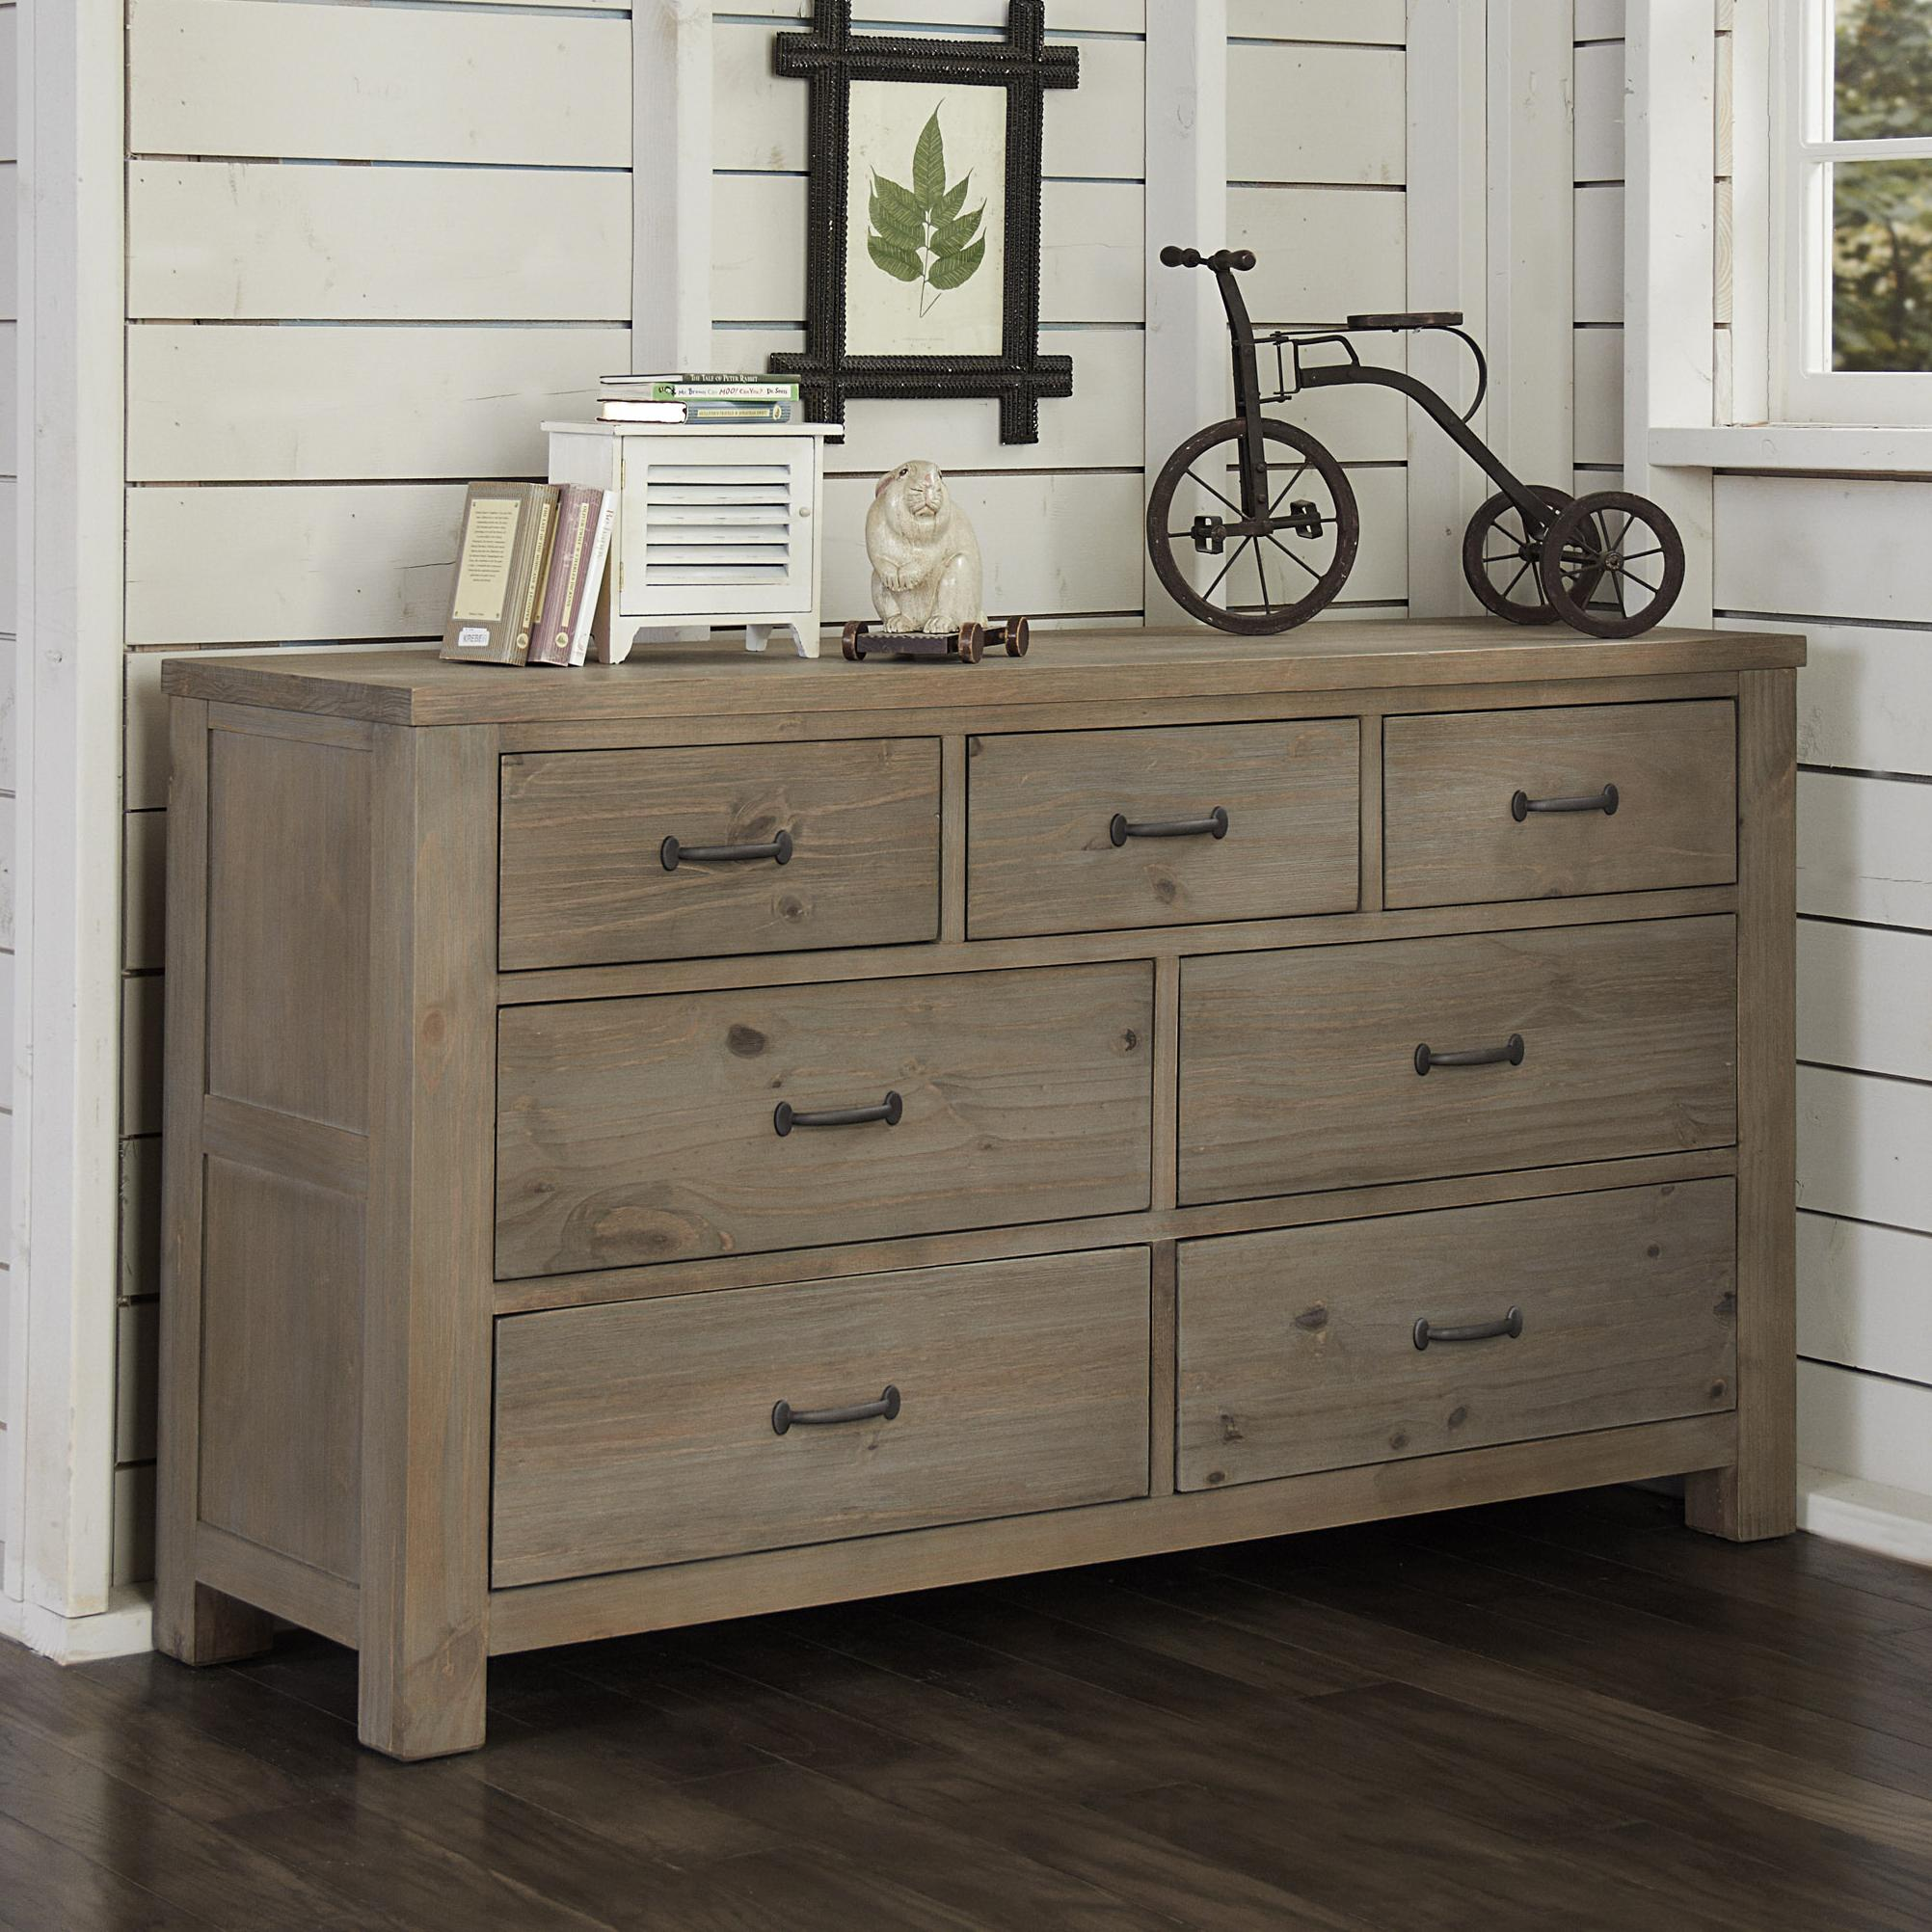 NE Kids Highlands Transitional 7 Drawer Dresser with Driftwood ... for Driftwood Color Furniture  183qdu